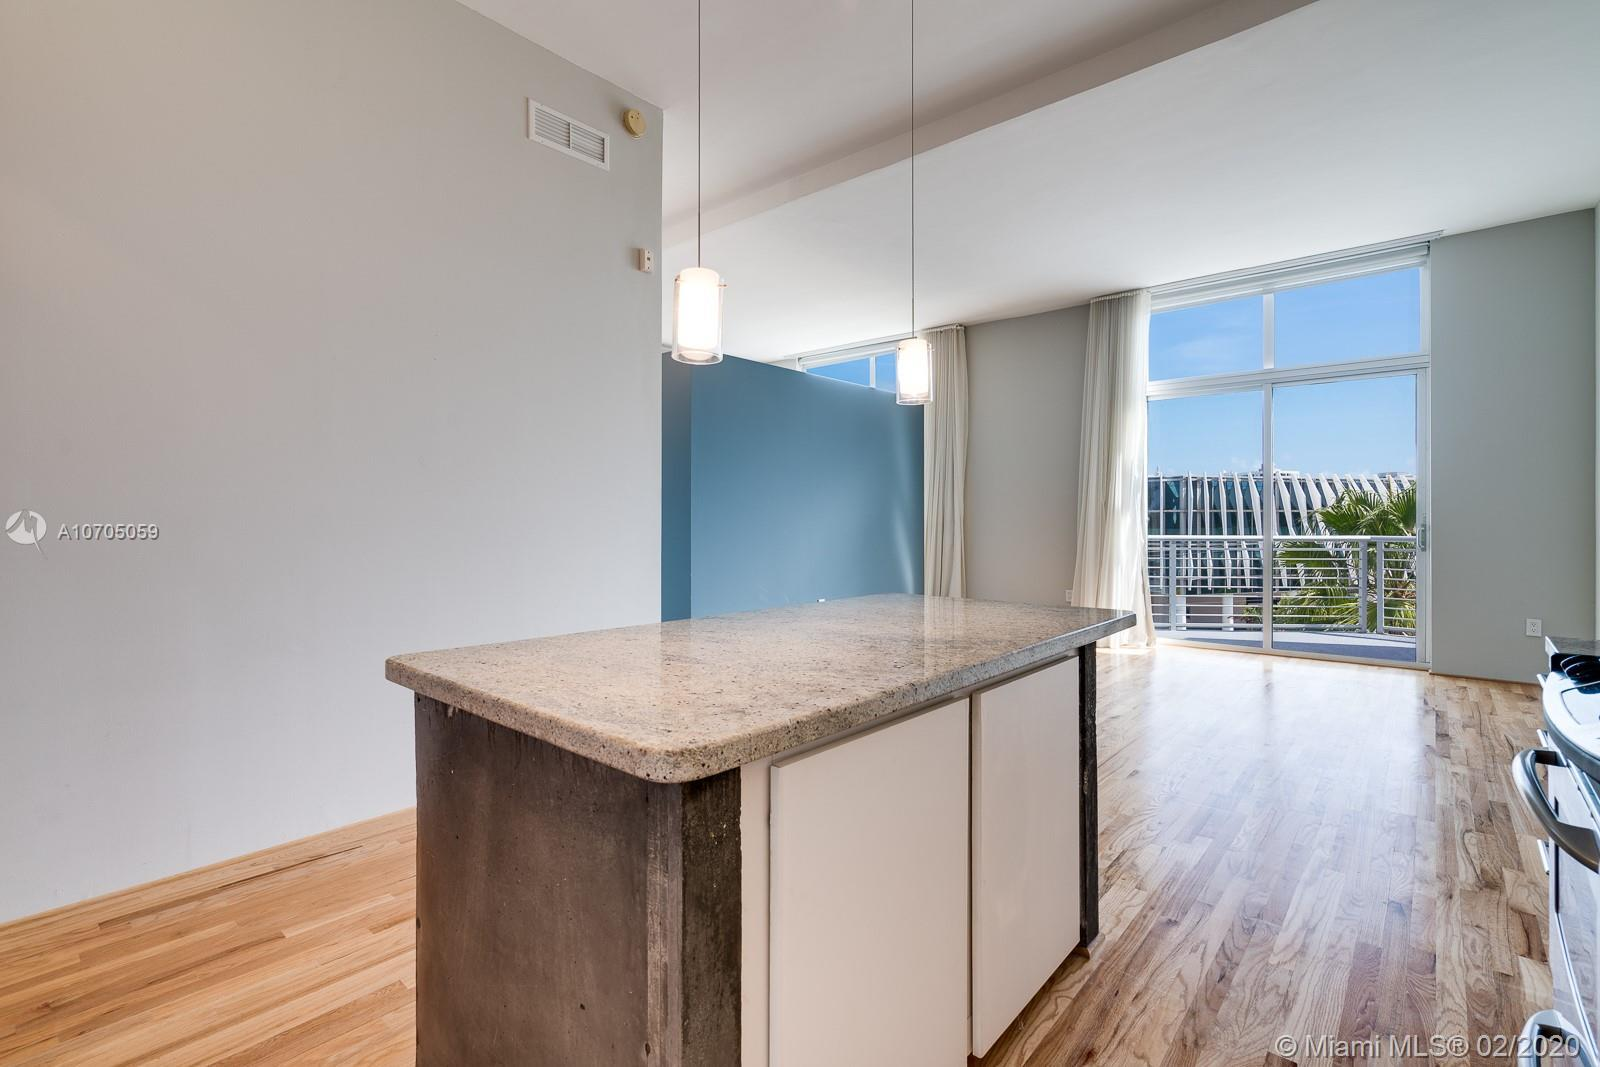 Meet 528, a contemporary loft space with sky high views of South Beach's exciting cityscape. This pi